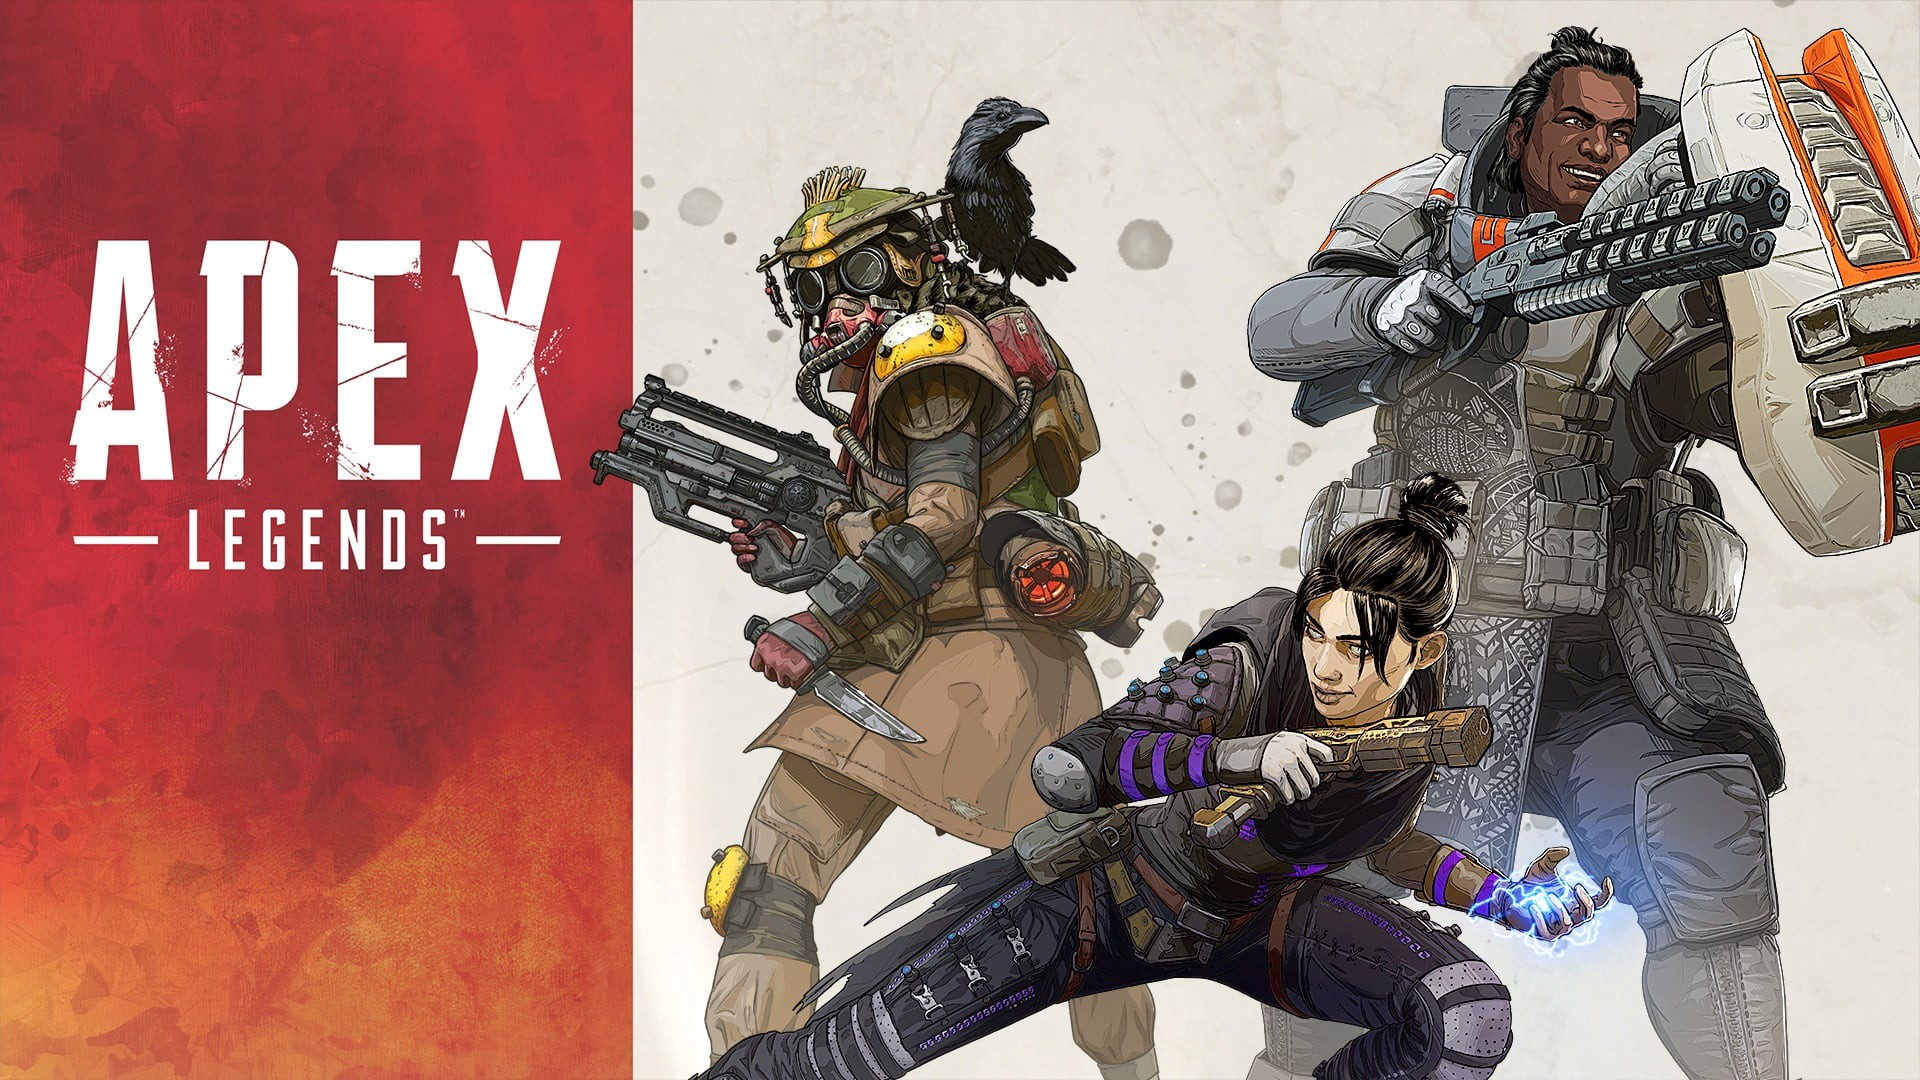 8 things PUBG should learn from Apex Legends experience design